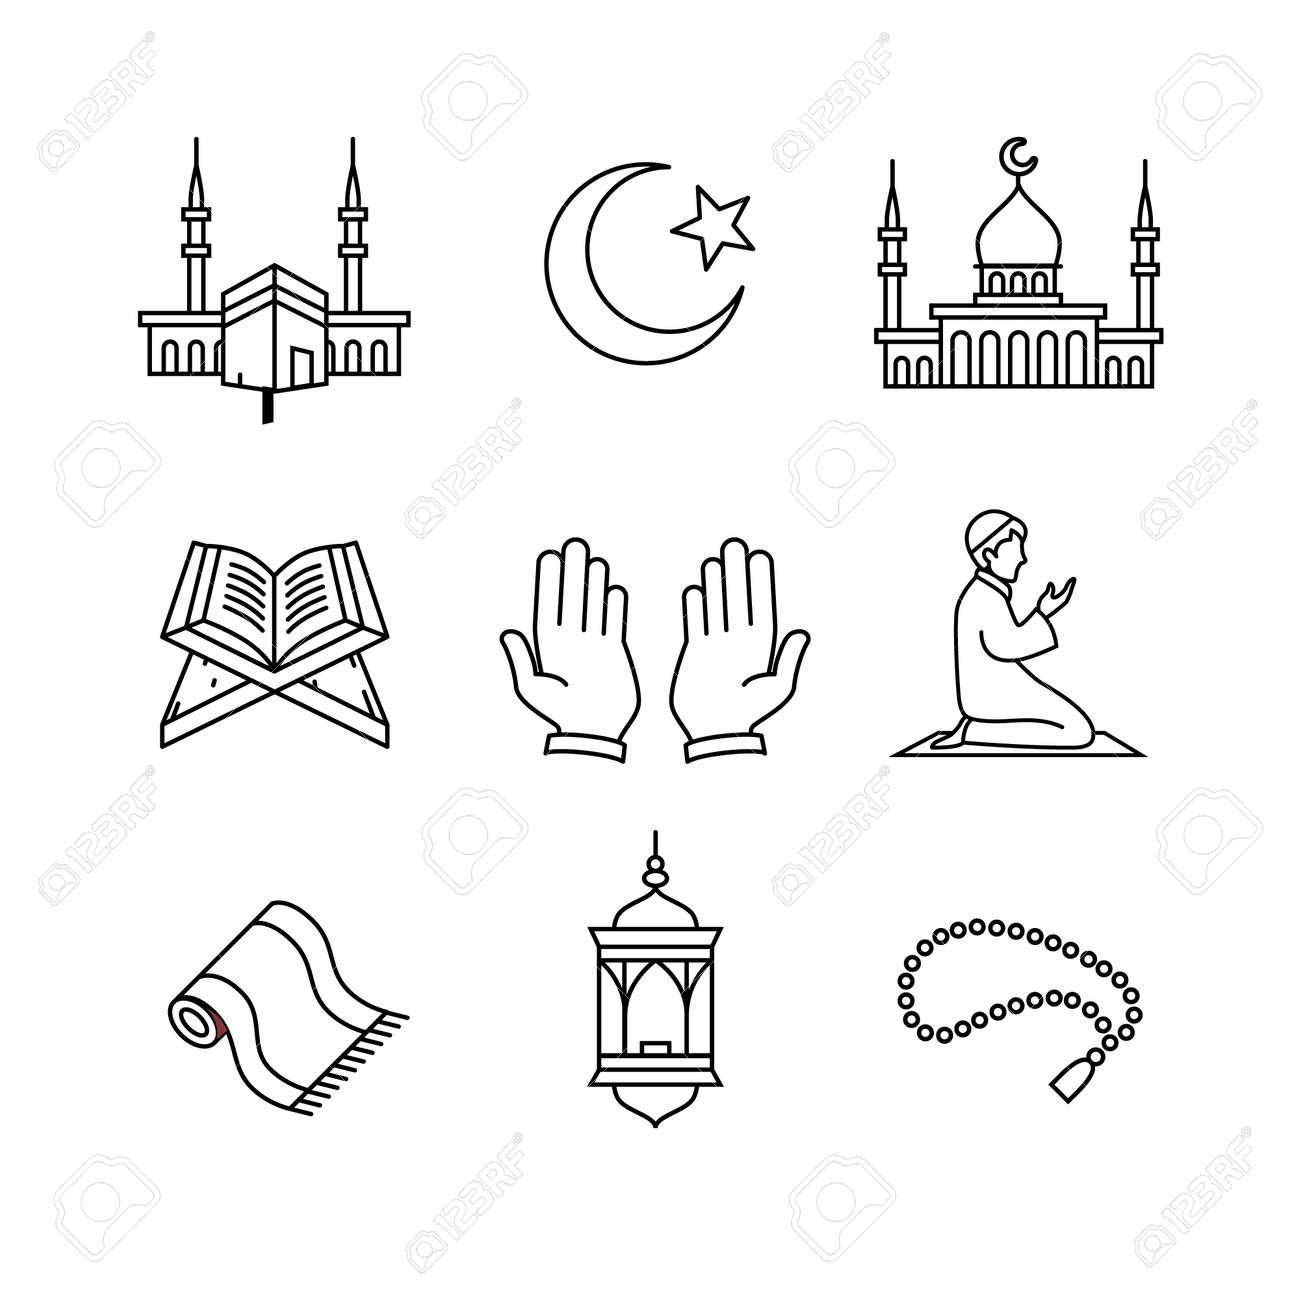 Muslim Islam Prayer And Ramadan Kareem Thin Line Art Icons Set